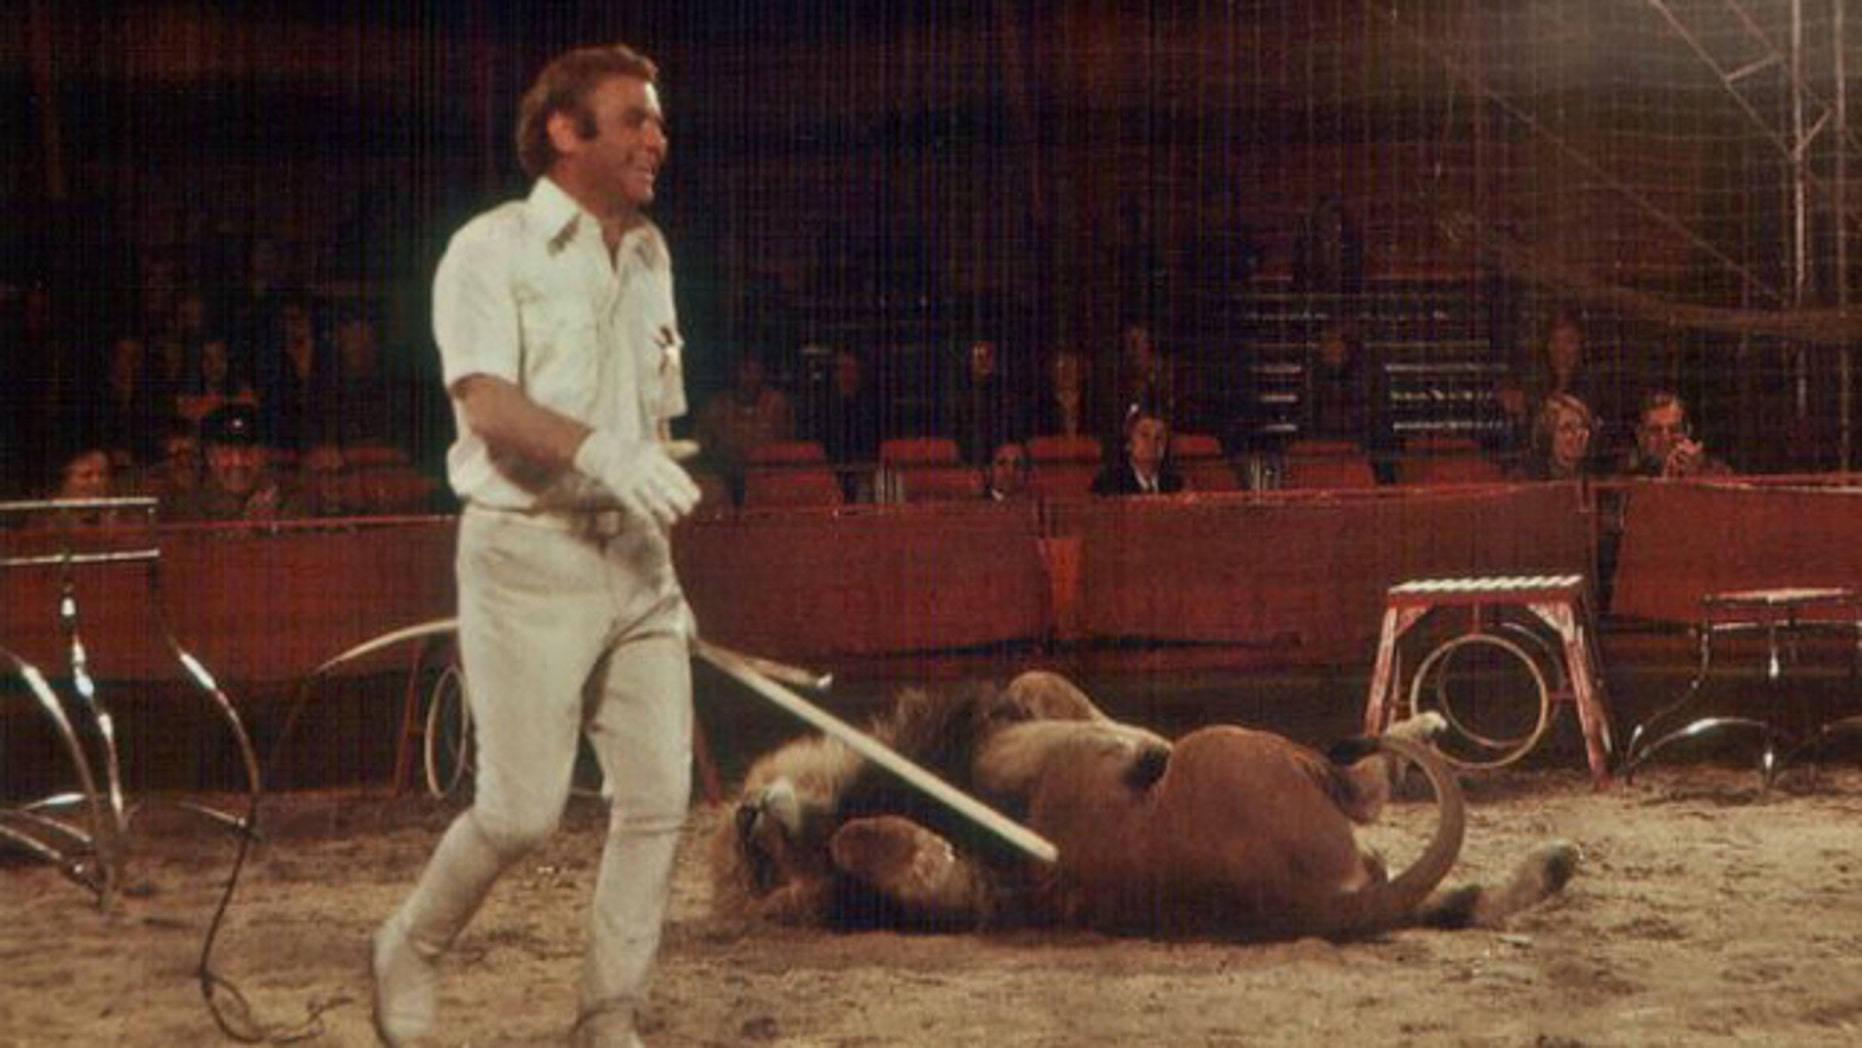 Lion tamer and circus director Gerd Siemoneit-Barum has a laugh in 1977. But in the future, U.K. circuses may not be able to have such displays, thanks to new legislation.